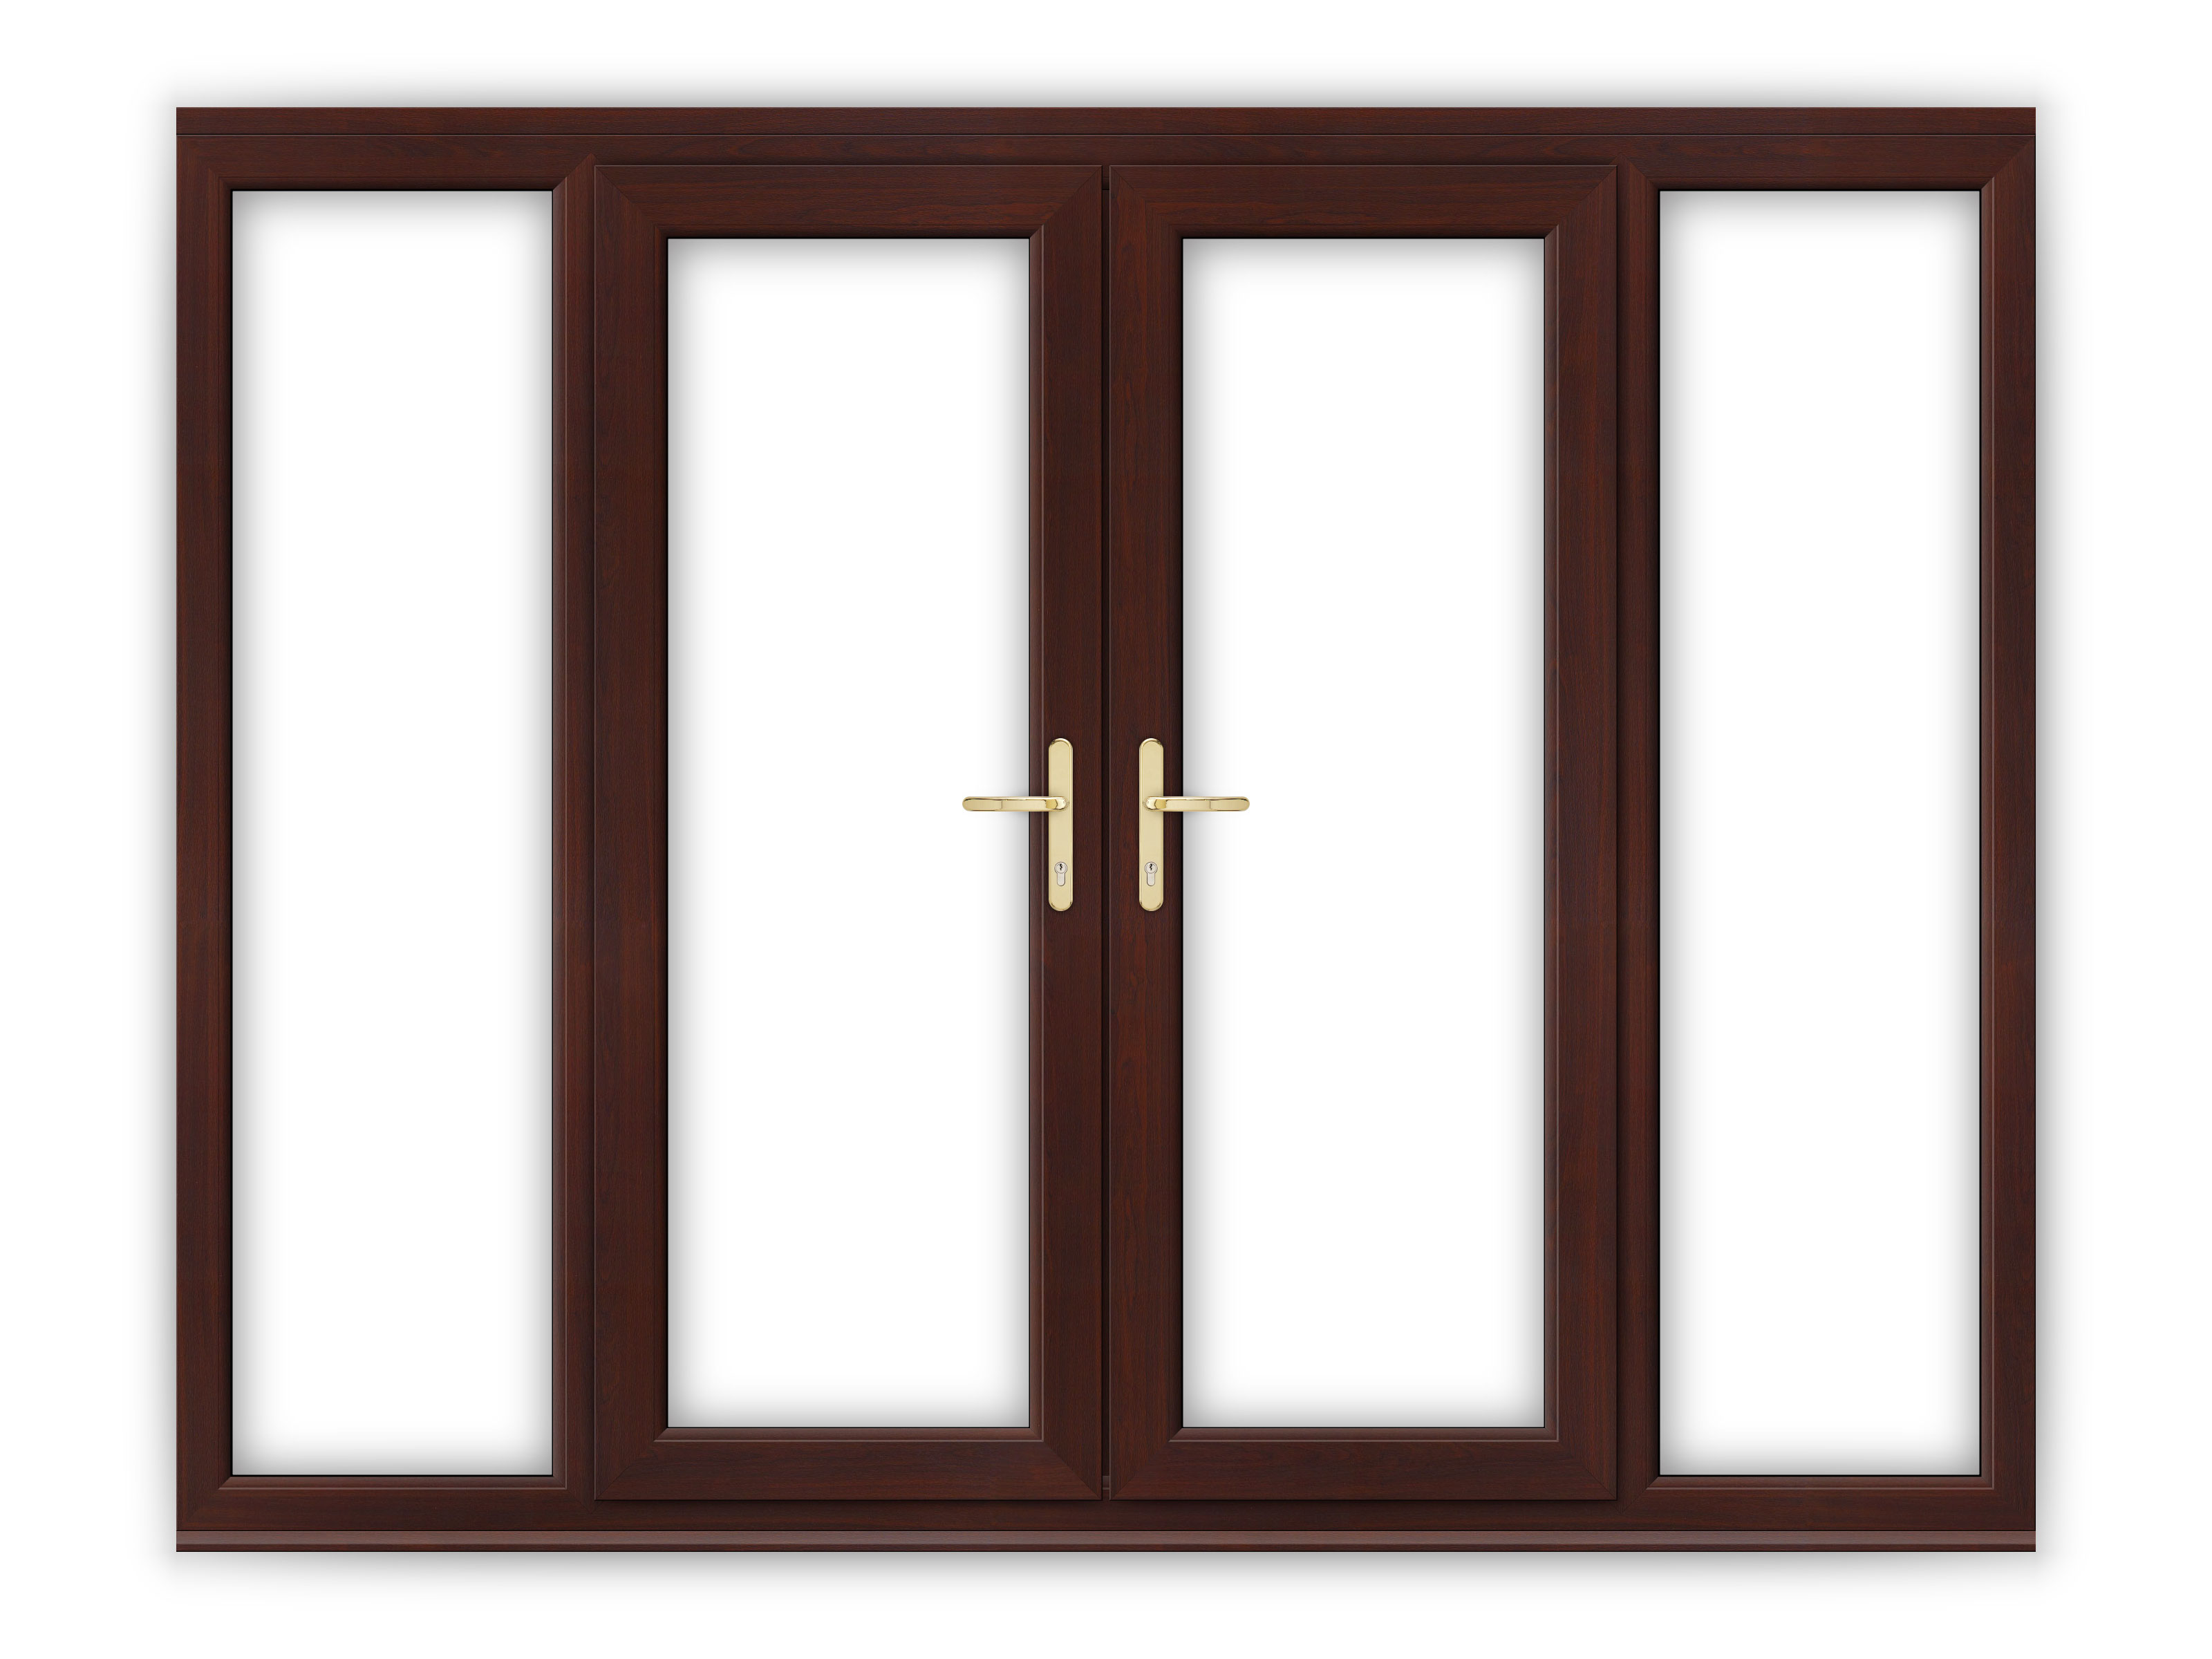 5ft rosewood upvc french doors with wide side panels - How wide are exterior french doors ...